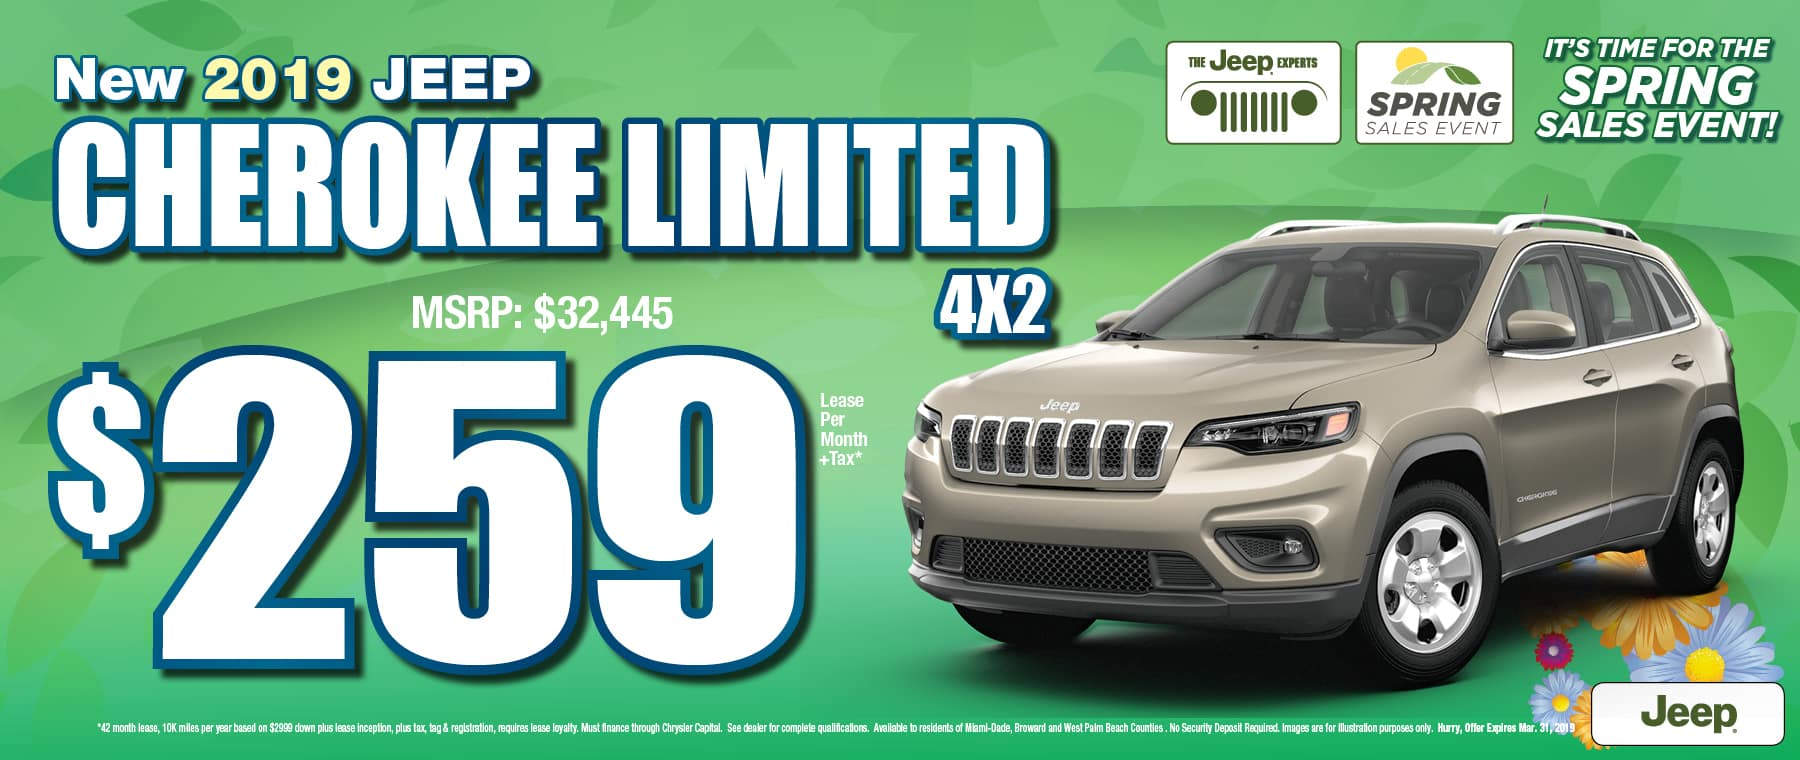 2019 Jeep Cherokee Limited $259 Lease